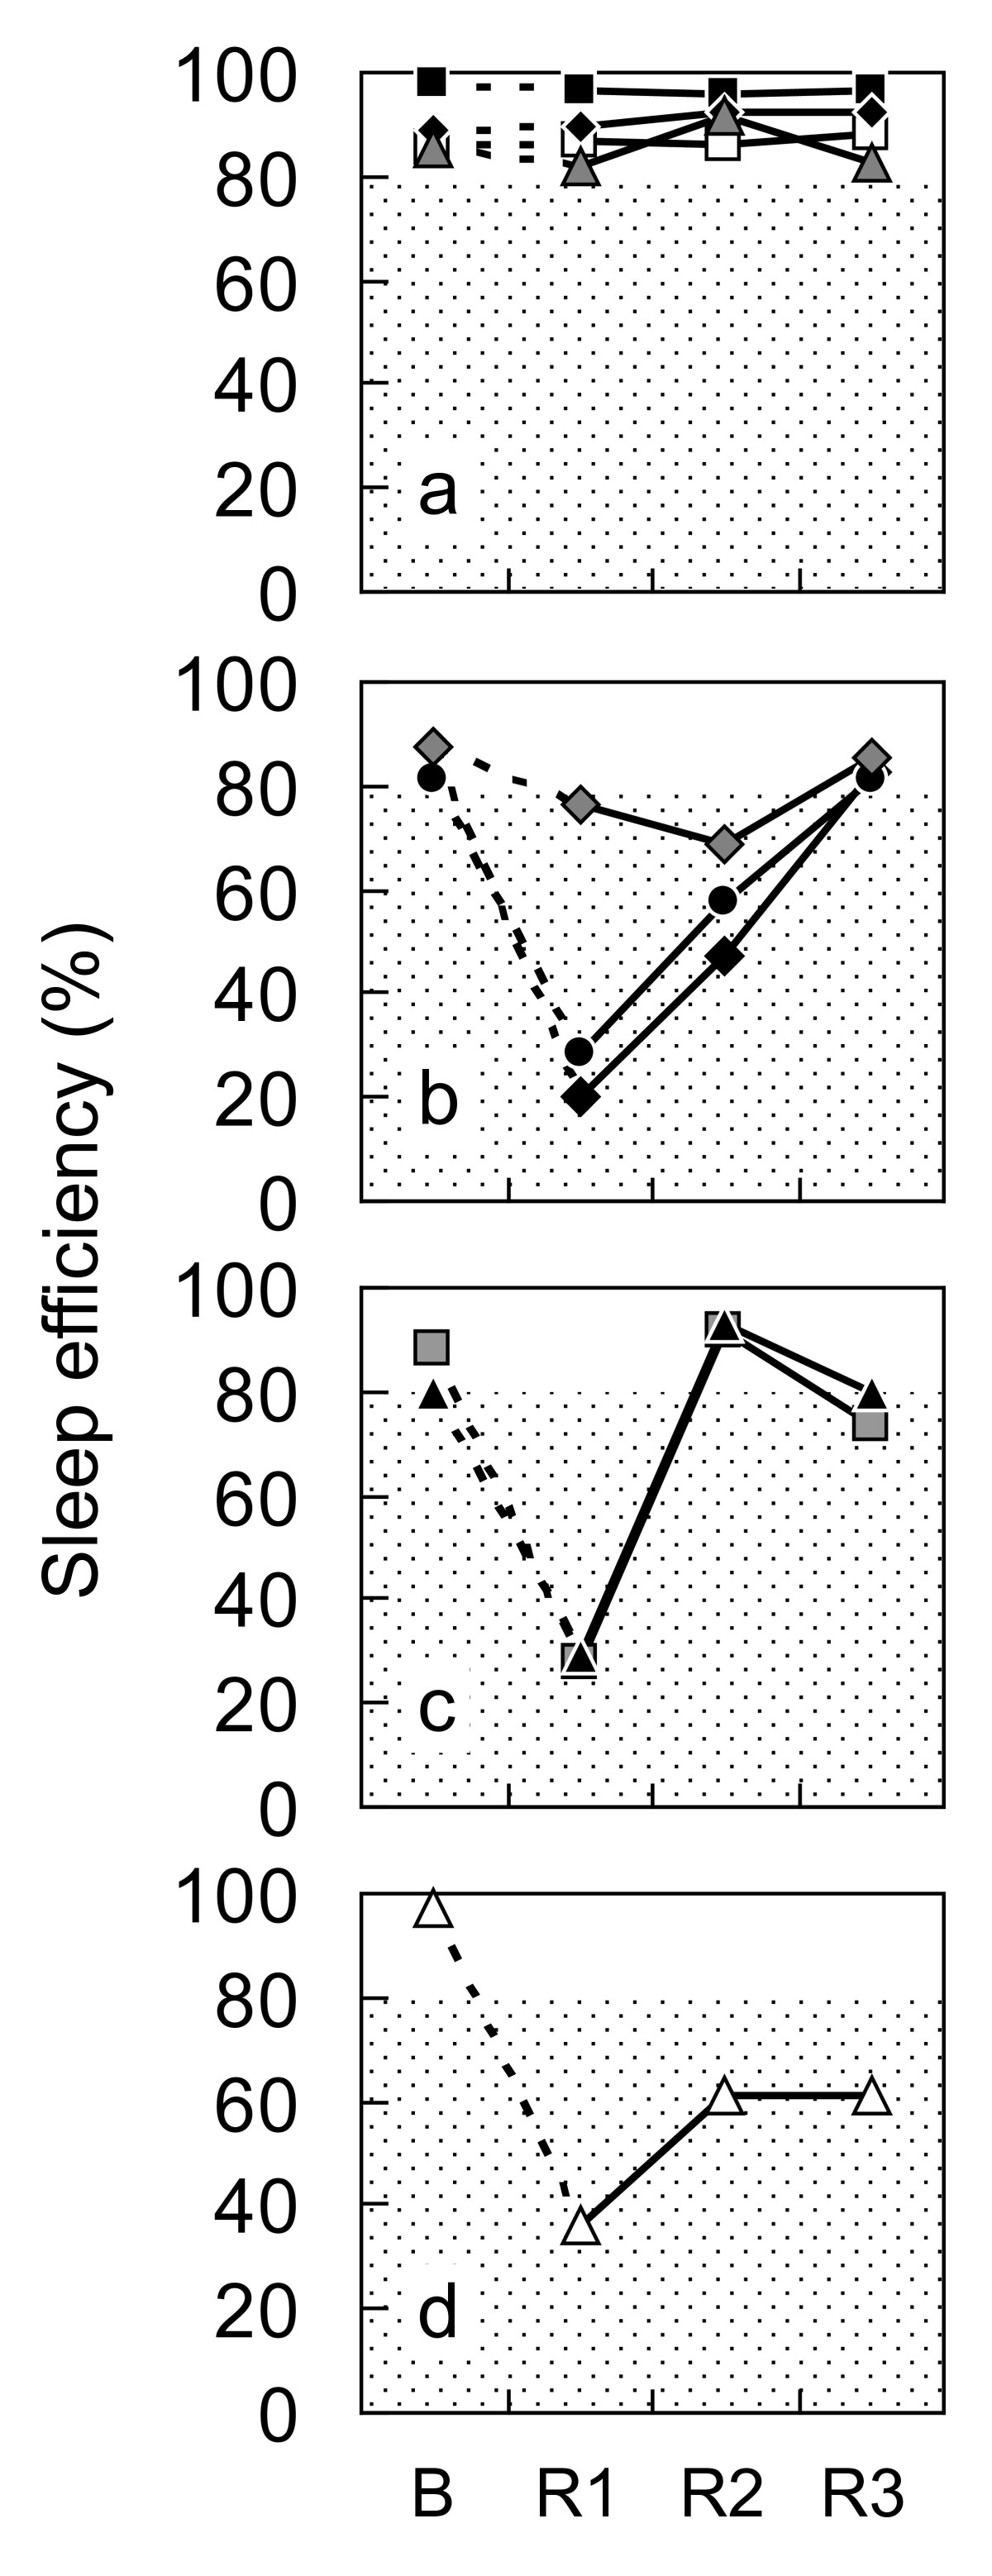 http://static-content.springer.com/image/art%3A10.1186%2F1880-6805-31-6/MediaObjects/40101_2012_Article_3_Fig4_HTML.jpg